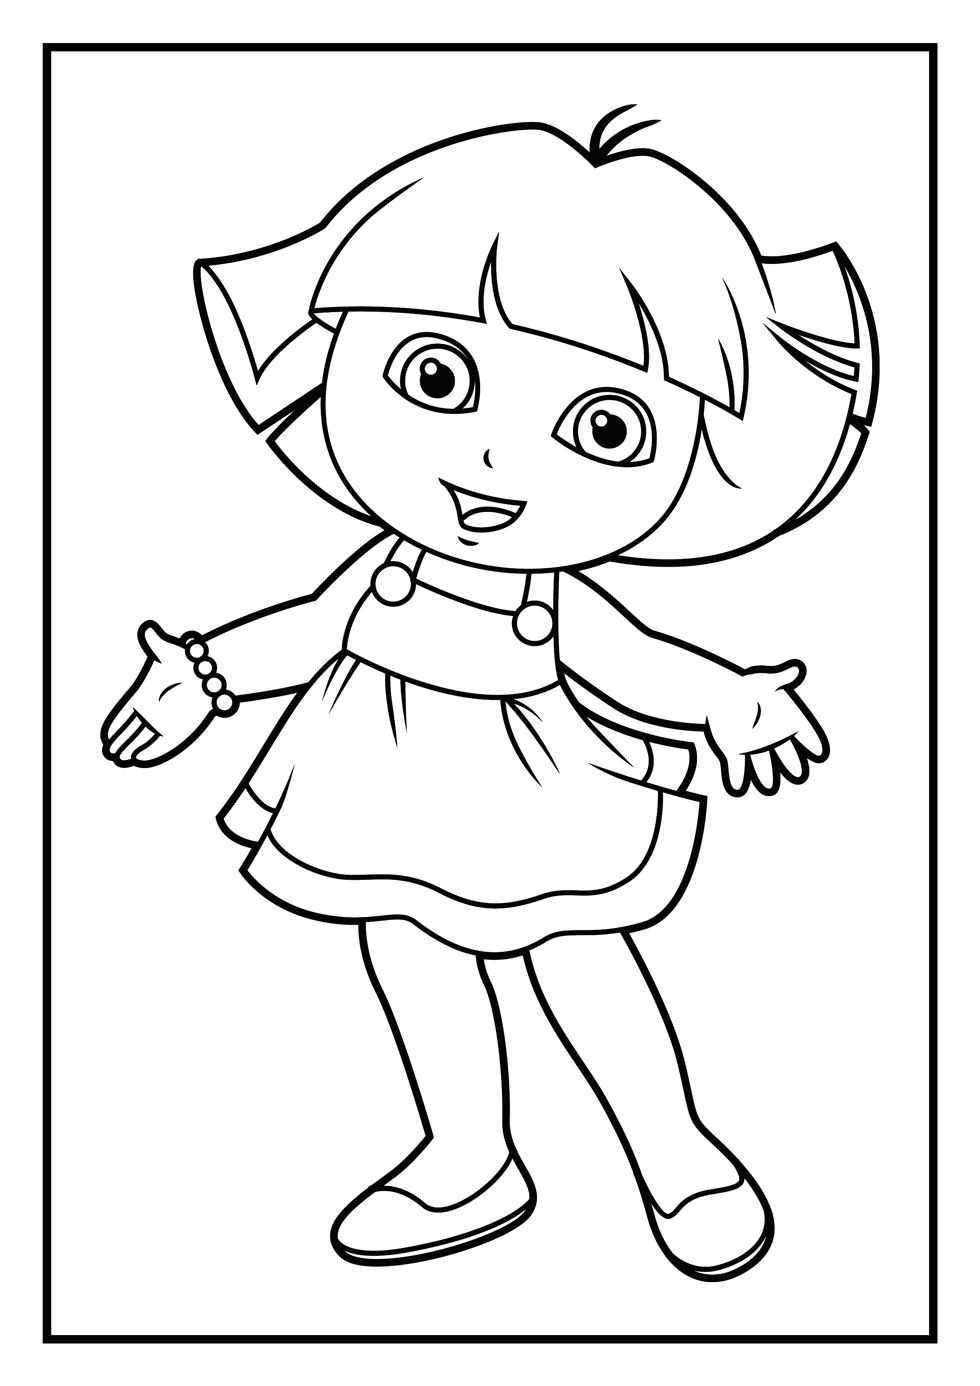 dora the explorer coloring pages 06 Gr det sjlv och hantverk